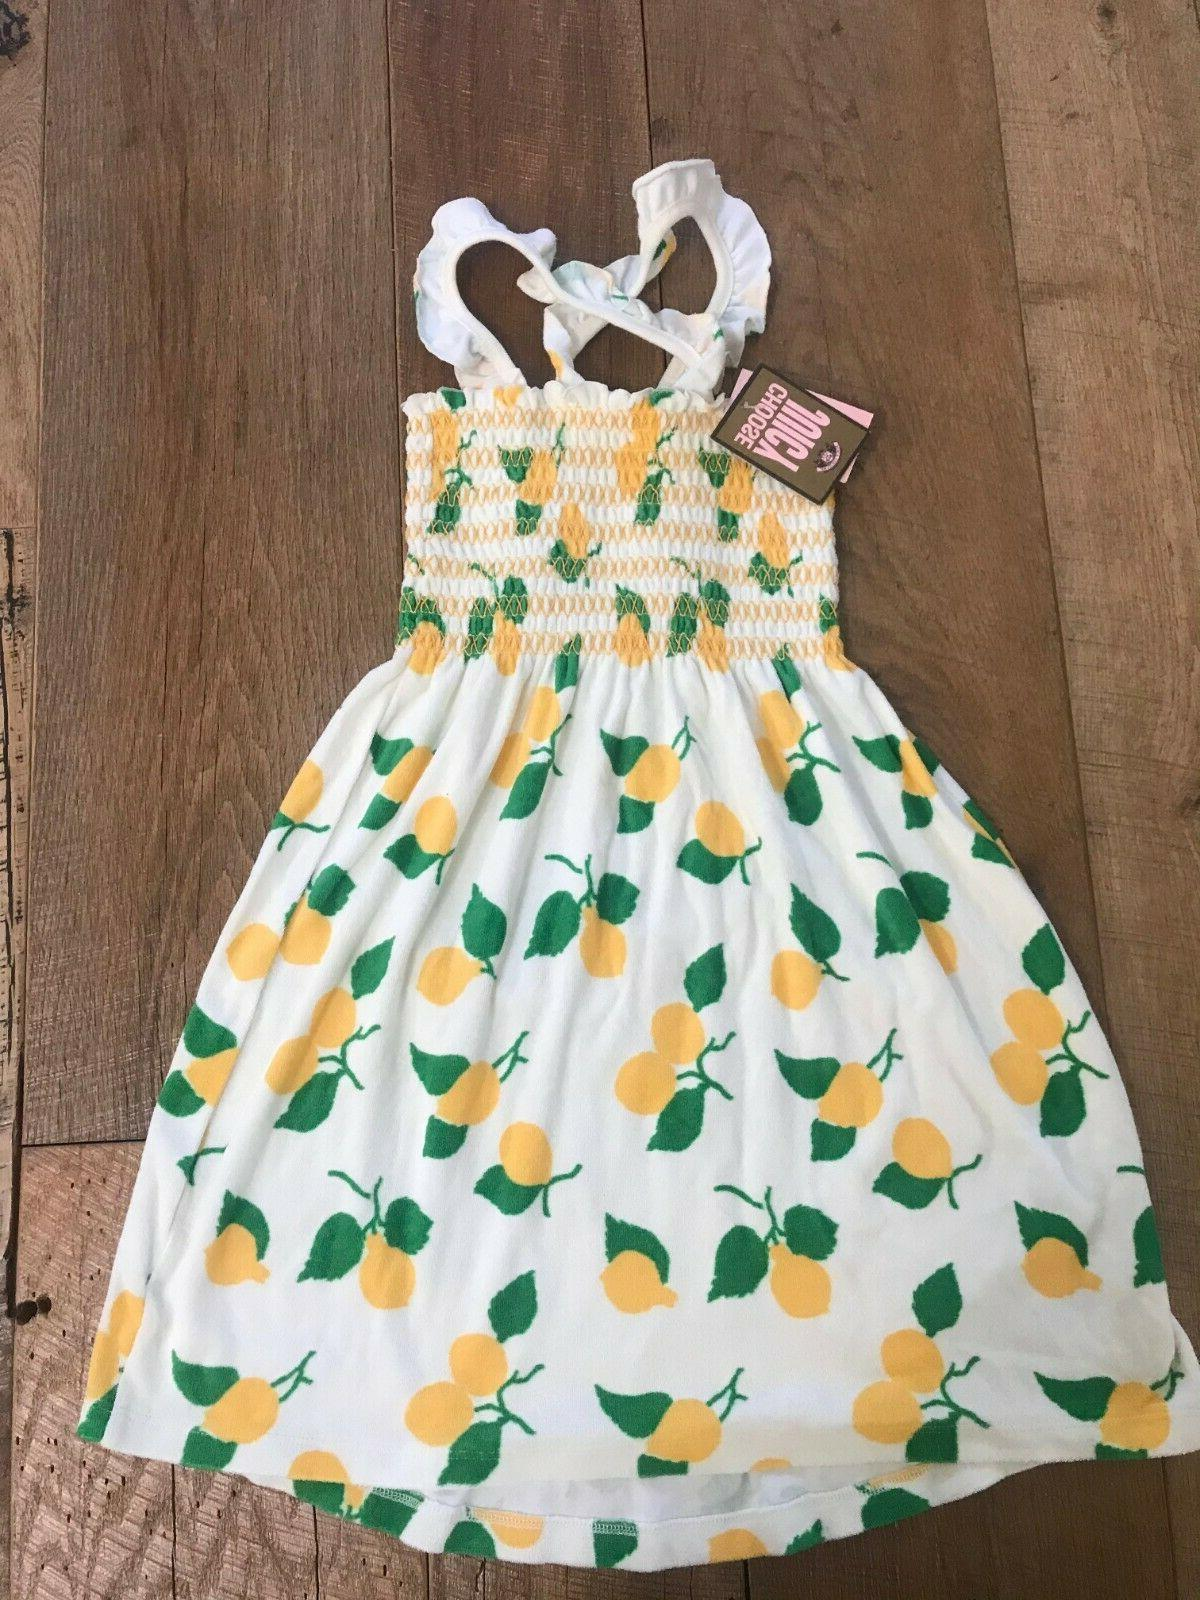 Juicy Couture Dress Marigold Lemon Terry Smocked 10